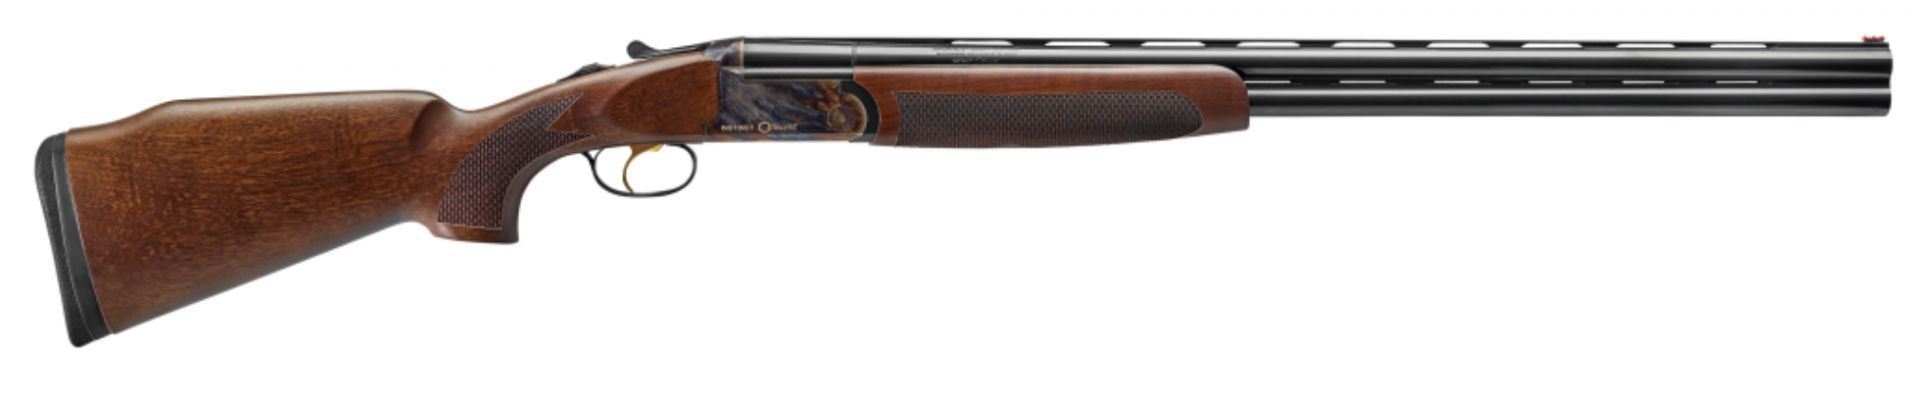 "Franchi Instinct Catalyst |12ga 28"" Barrel 3"" Chamber A-Grade Satin Walnut 13.875"" LOP Red Fiber Front Sight Color Case Hardened Receiver Includes IC, M, F Chokes, 7.2 Lbs"